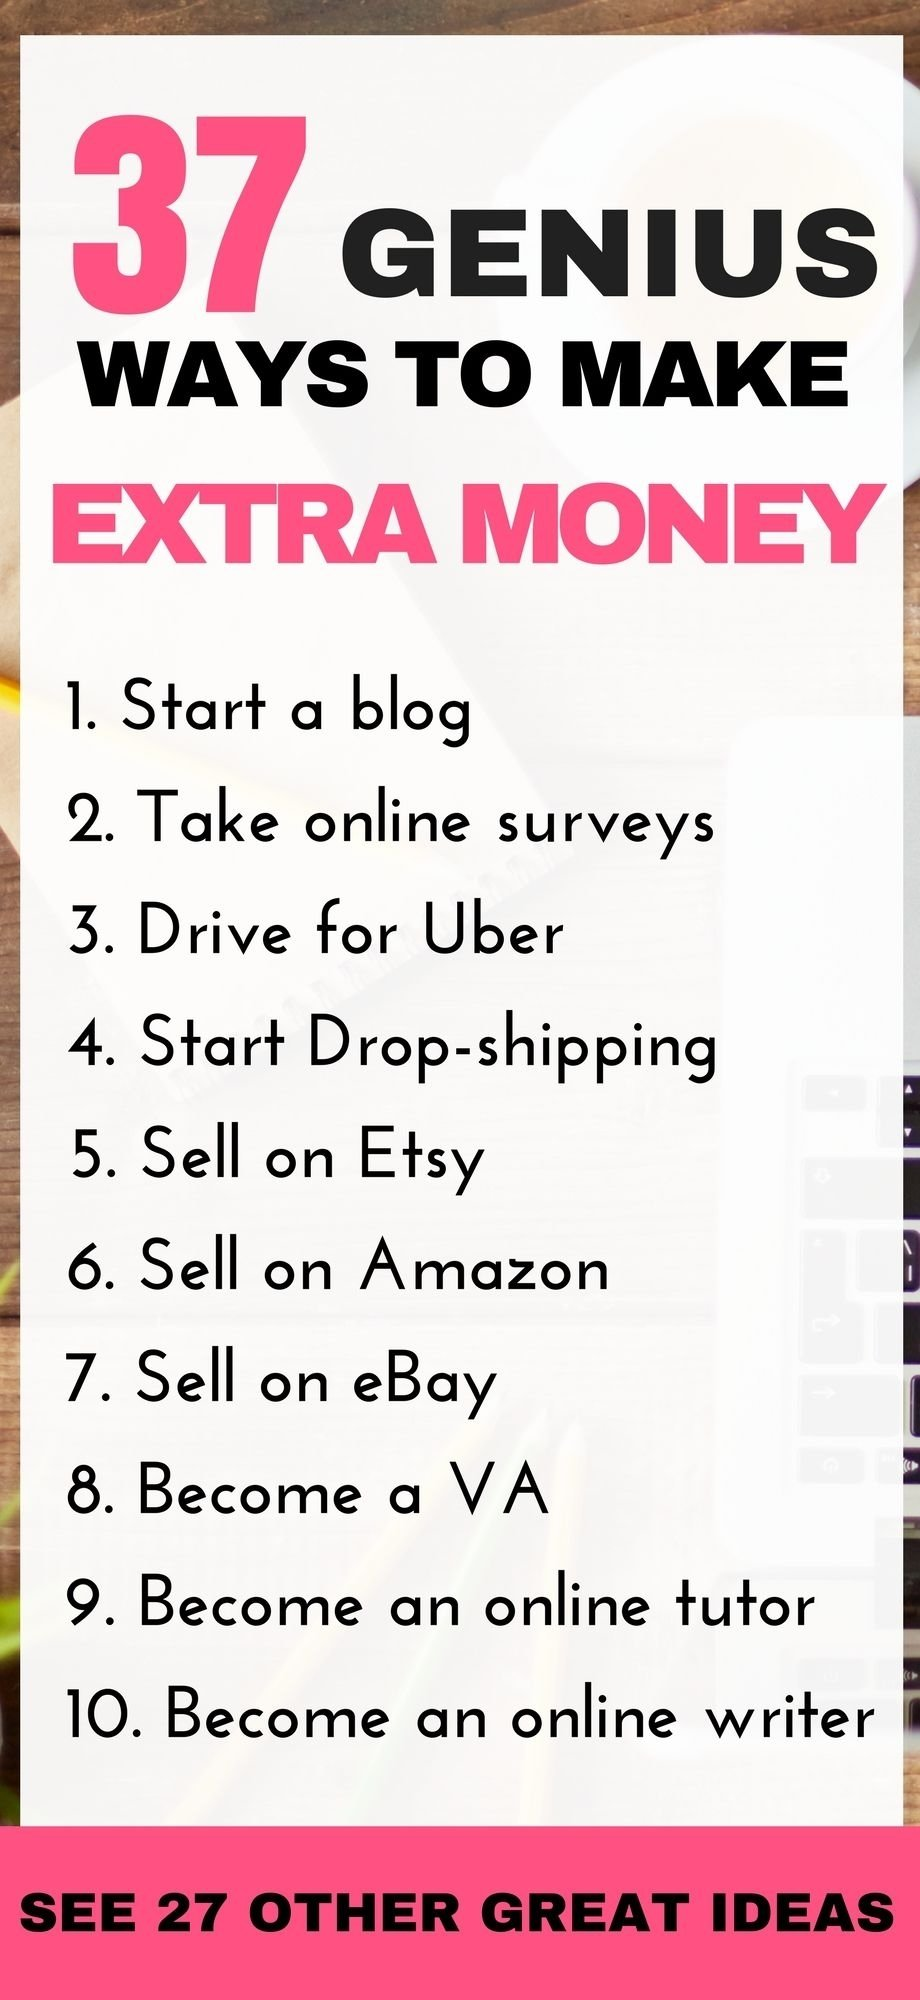 10 Nice Ideas To Make Extra Money From Home 30 genius ways to make extra money 1000 working from home 16 2020